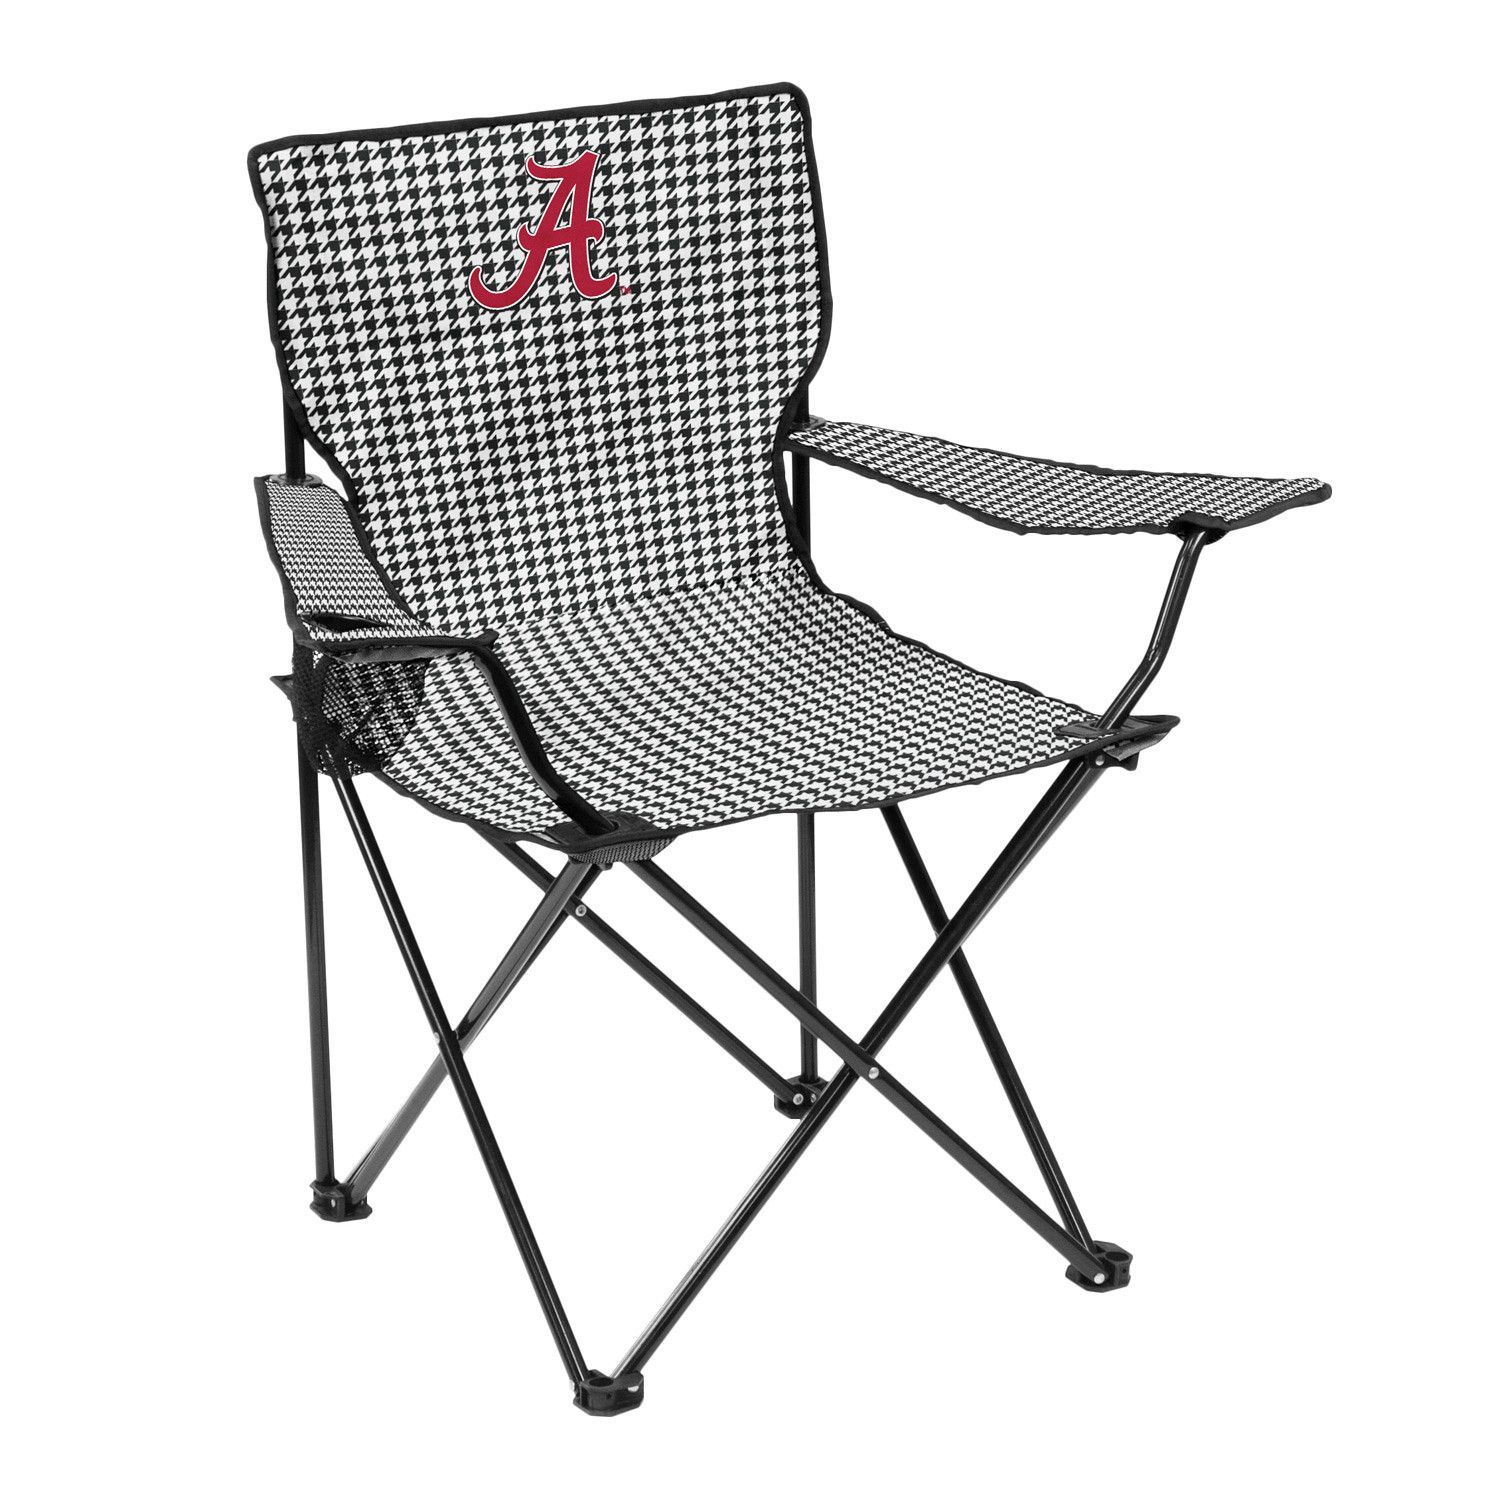 Beau Logo Chair Alabama Houndstooth Quad Chair   You Just Canu0027t Properly  Tailgate Without The Complete Set Of Tide Gear, And That Includes The Logo Chair  Alabama ...